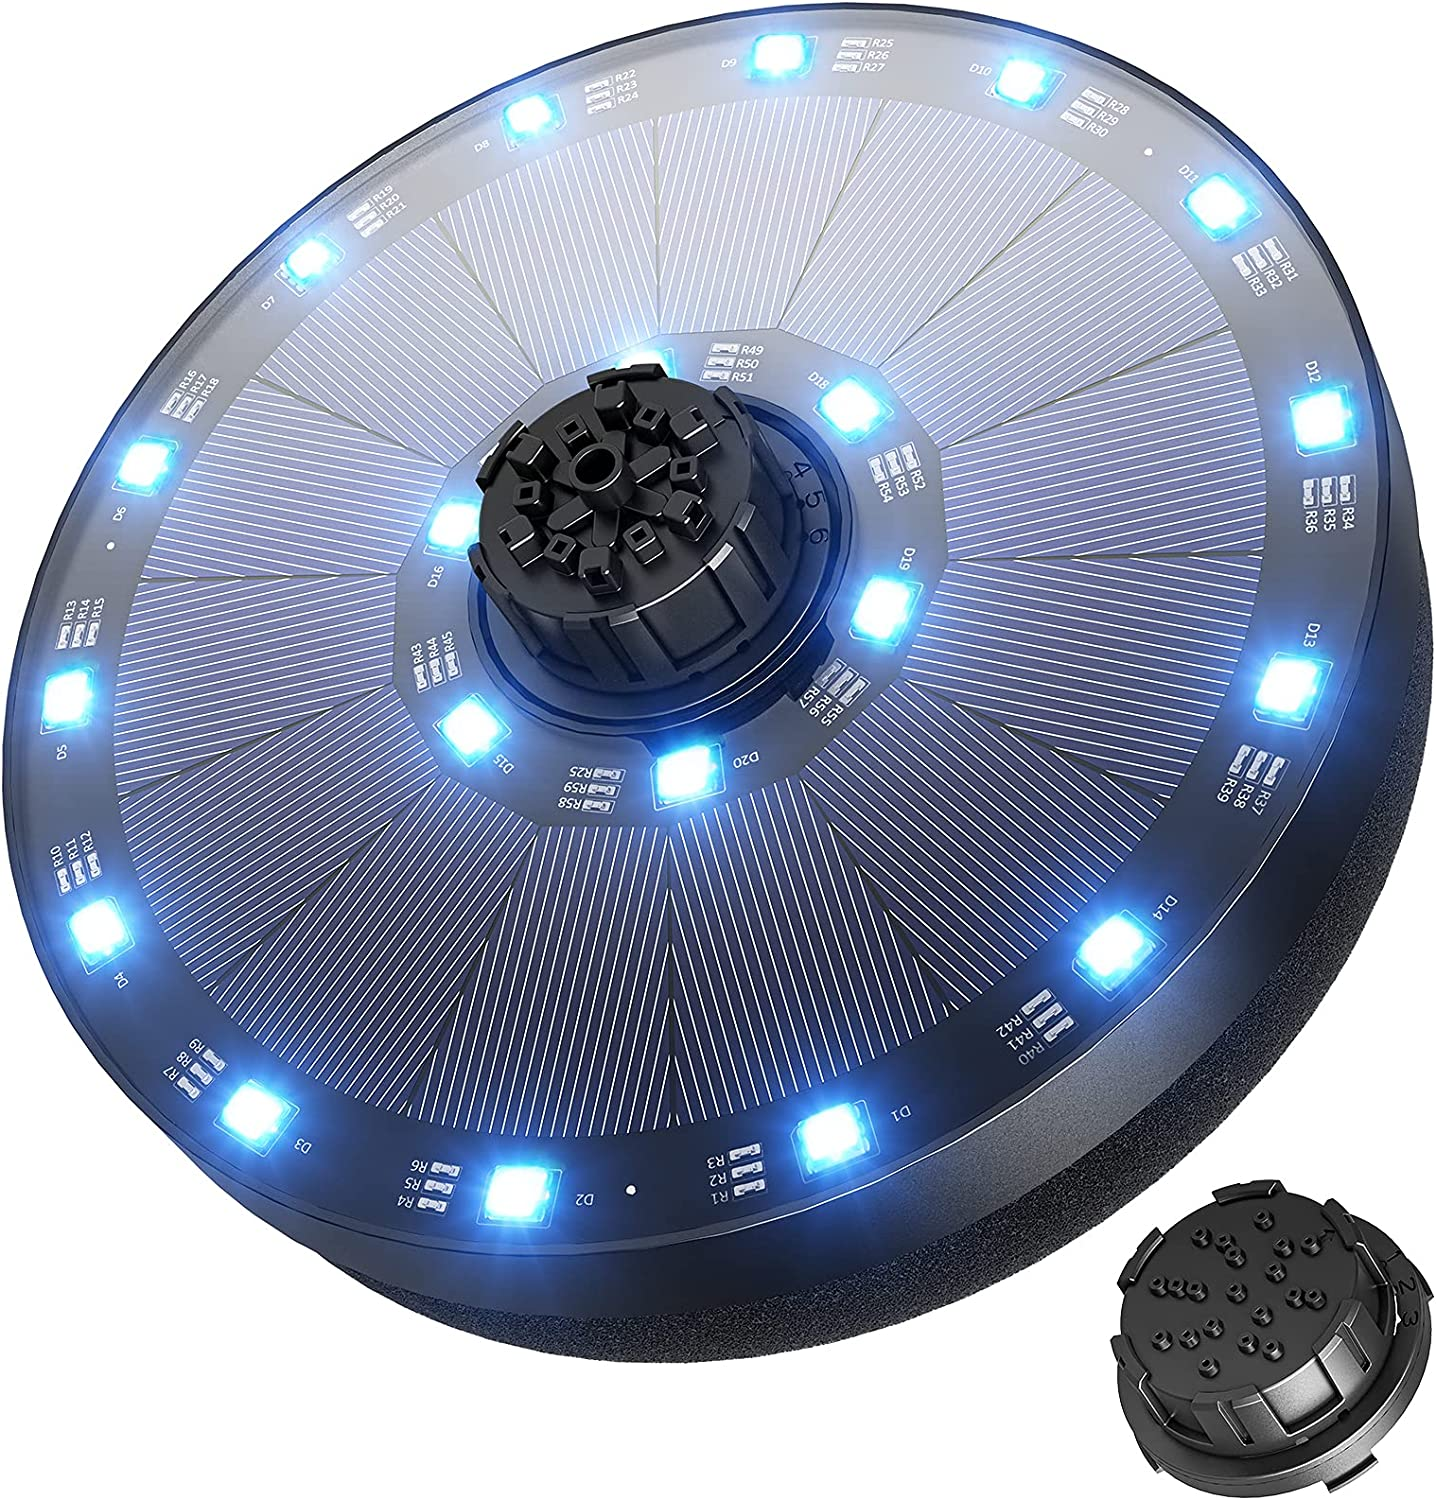 Max 72% OFF OKMEE Solar Fountain Upgraded Super sale period limited 4-in-1 LED 3.5W Powe Nozzle